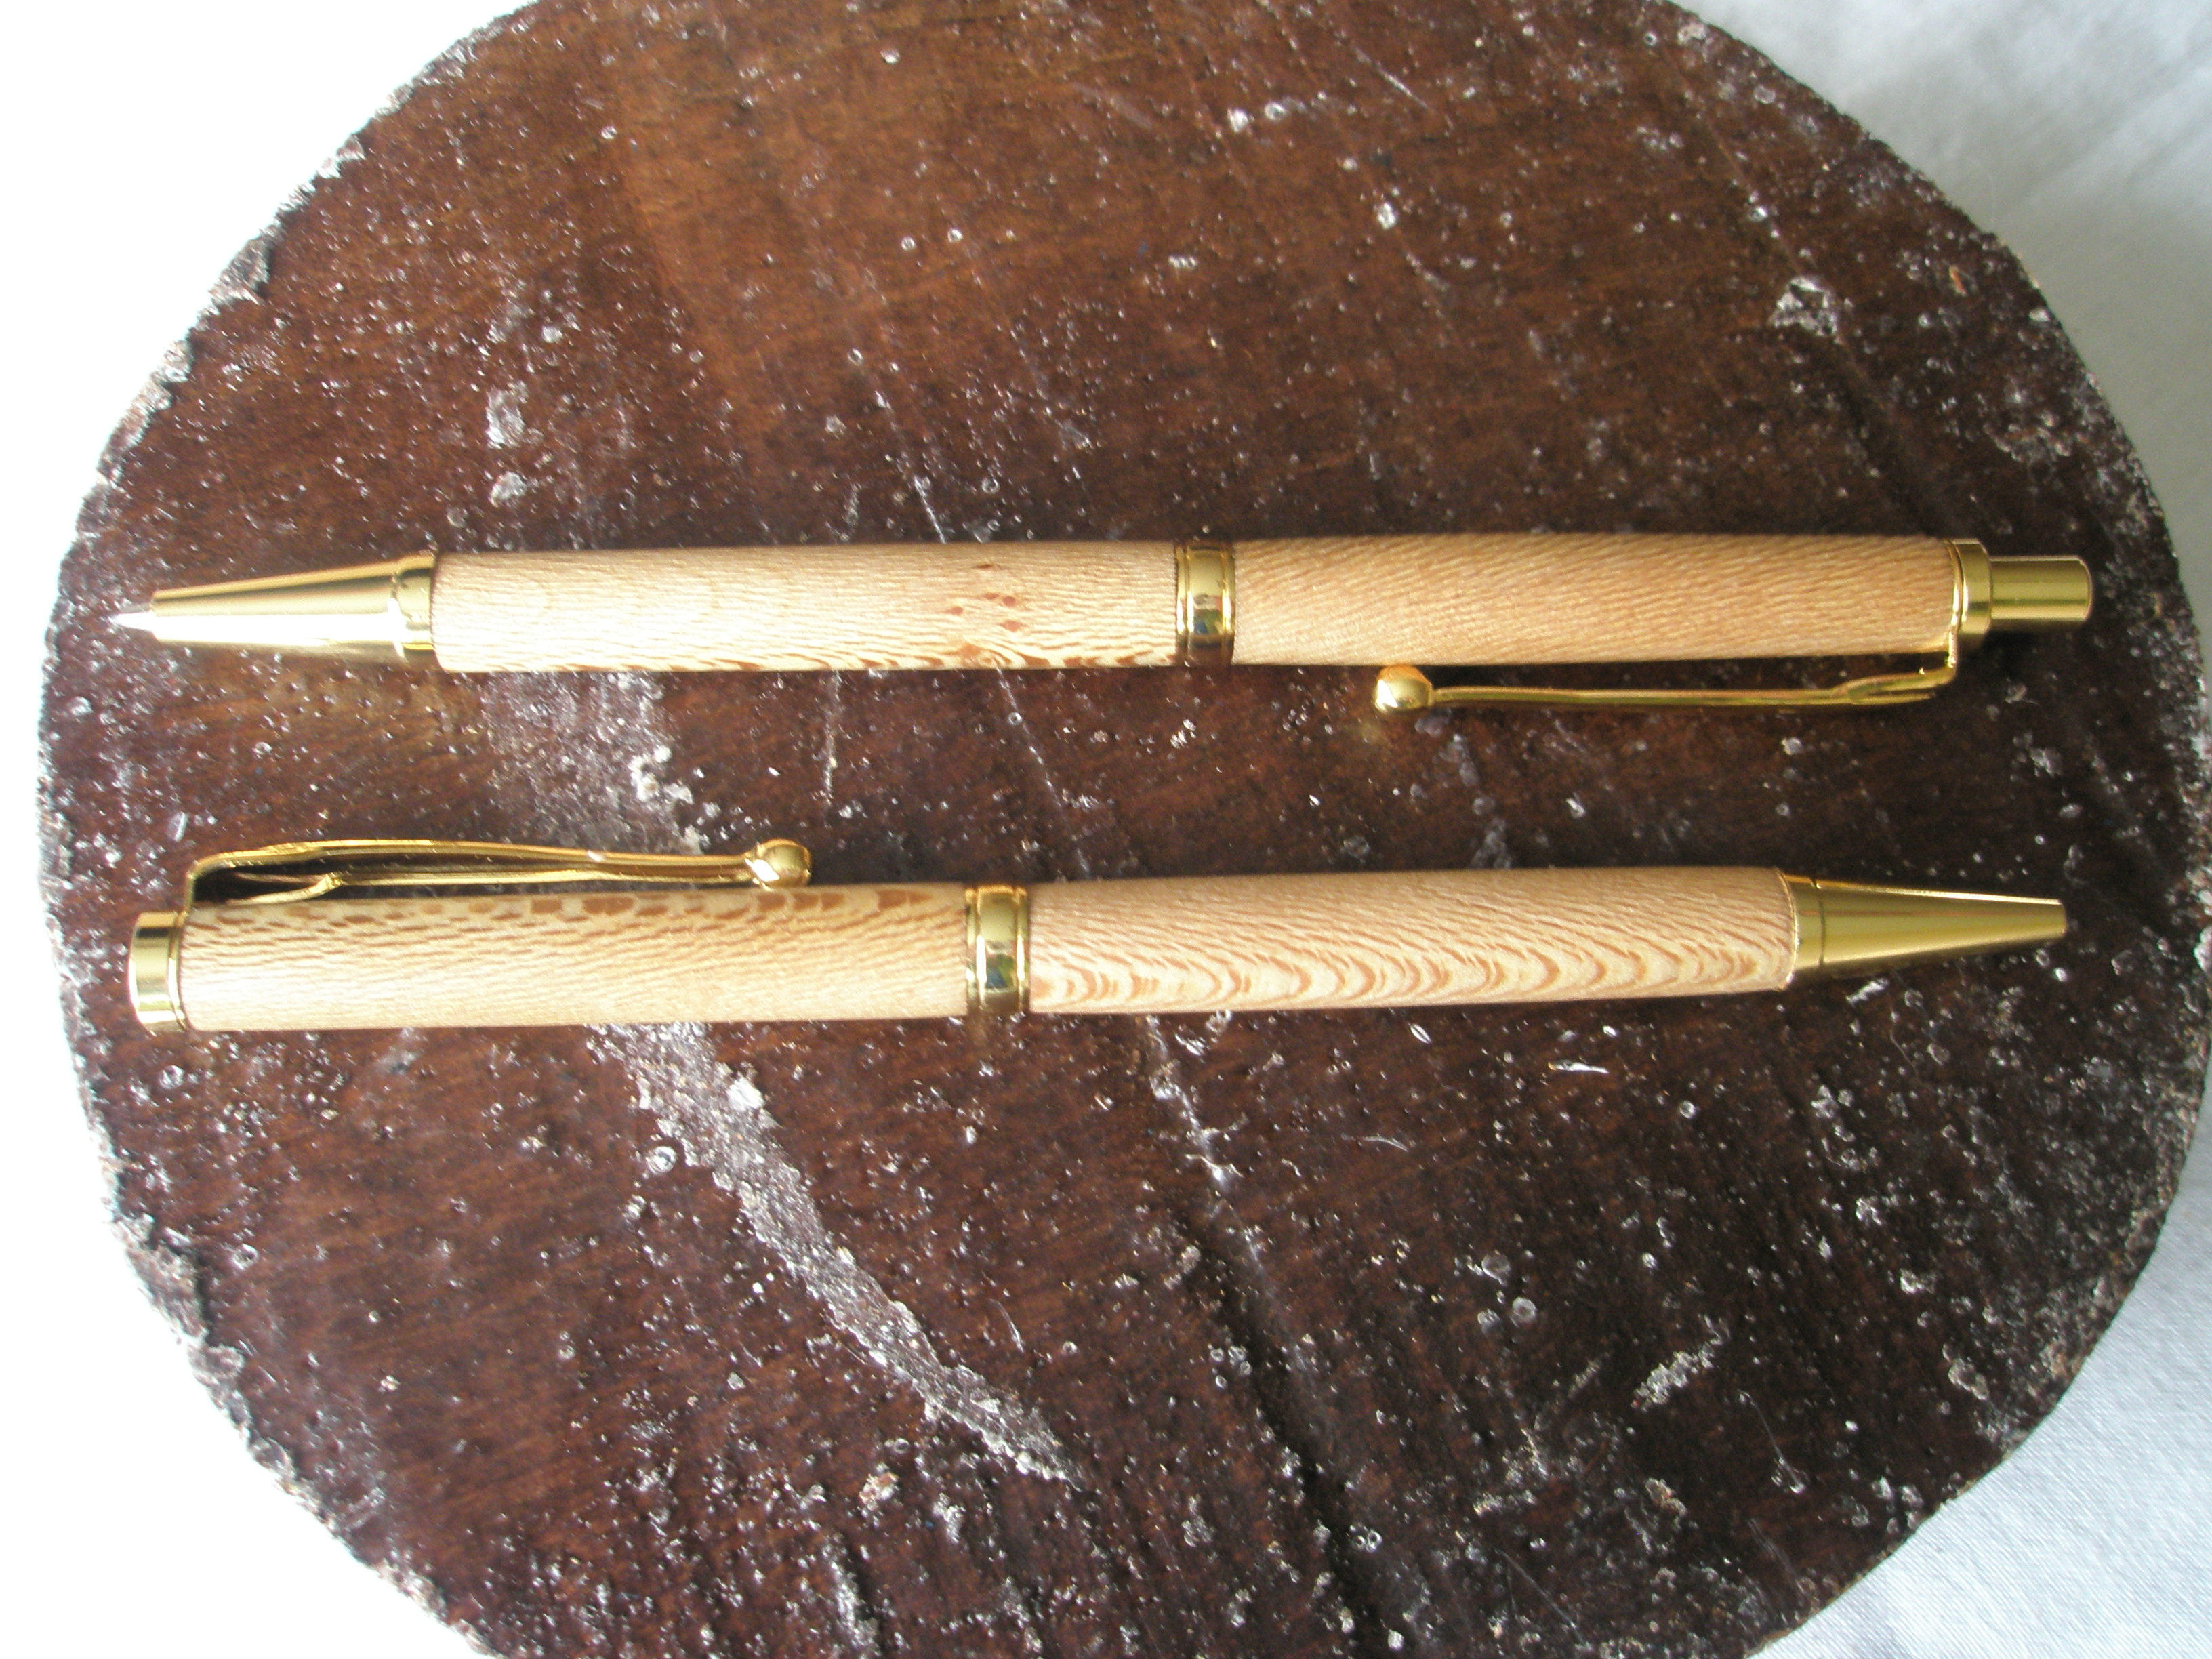 Pair of slimline pen and pencil set, in London Plain and 24carat Gold plated trimmings